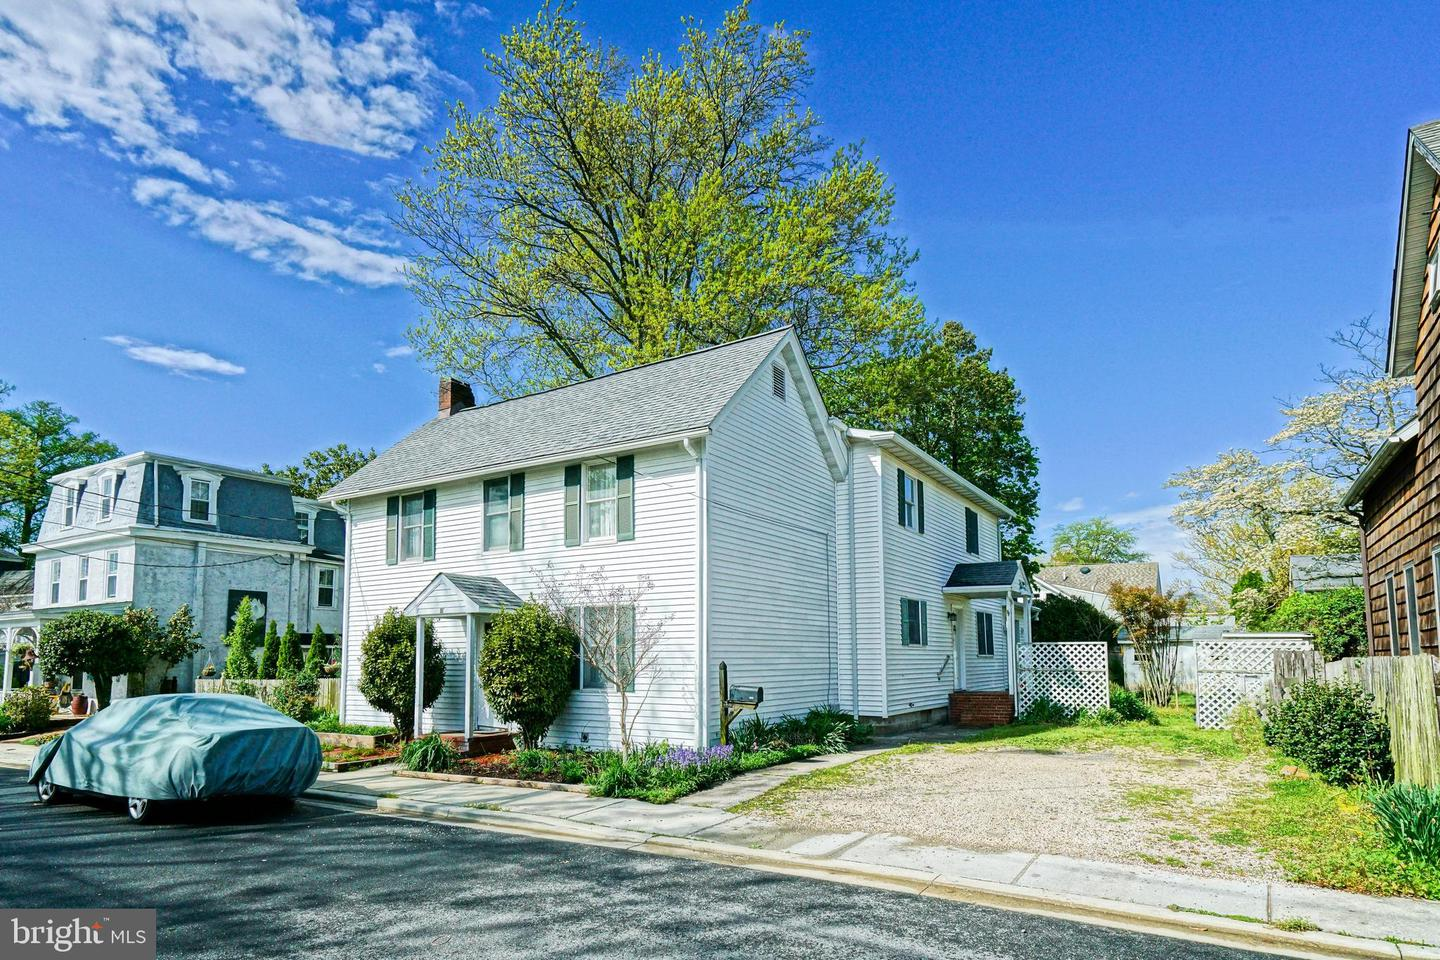 DESU139220-301674673901-2019-07-19-15-20-08 111 Madison Ave | Lewes, DE Real Estate For Sale | MLS# Desu139220  - Lee Ann Group